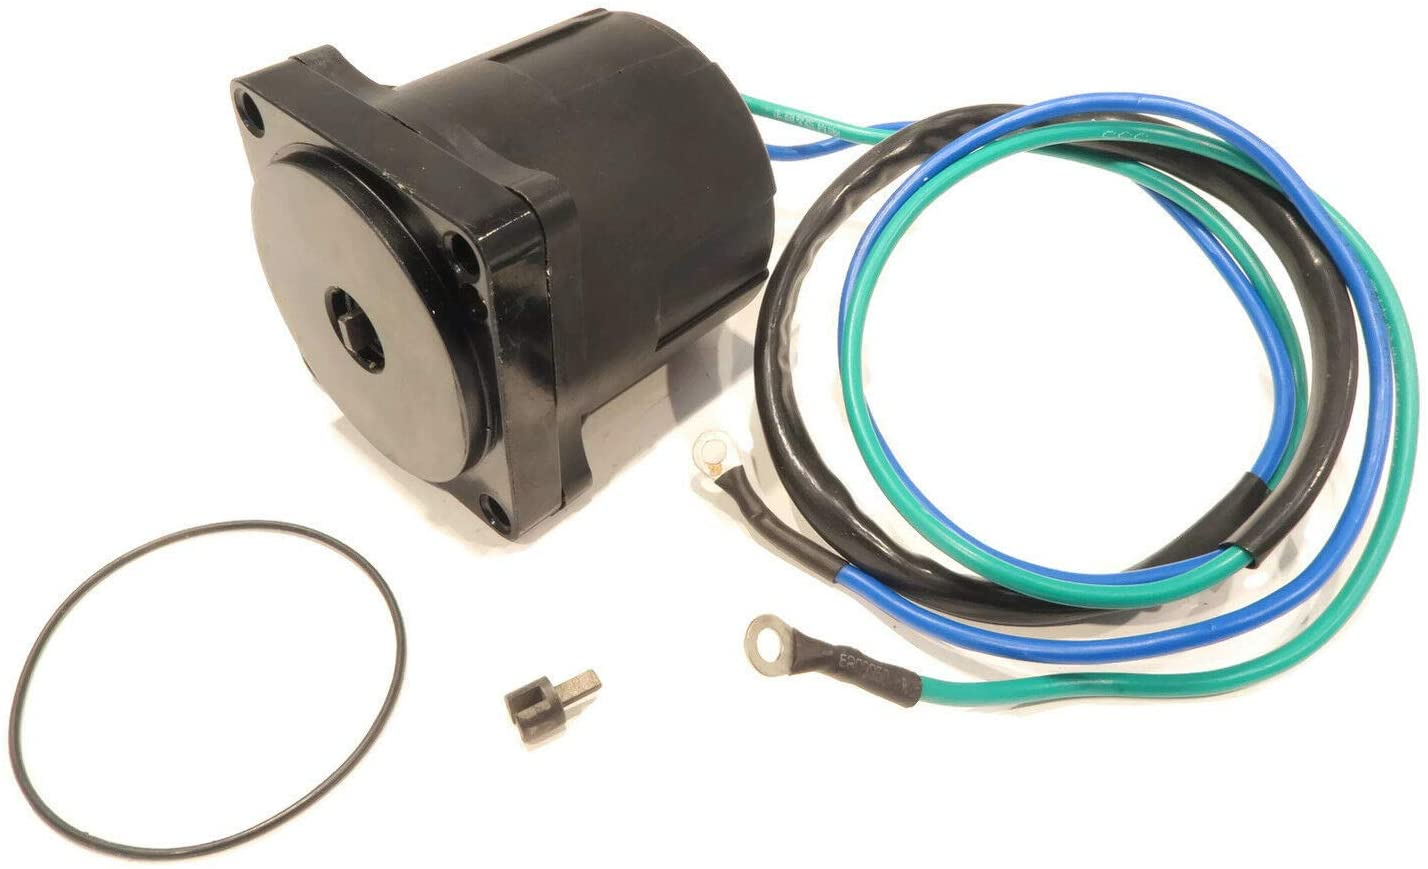 The ROP Shop | Trim Motor with O-Ring for 2004 Yamaha 200HP, LZ200TXRC, VX200TLRC, VZ200TLRC